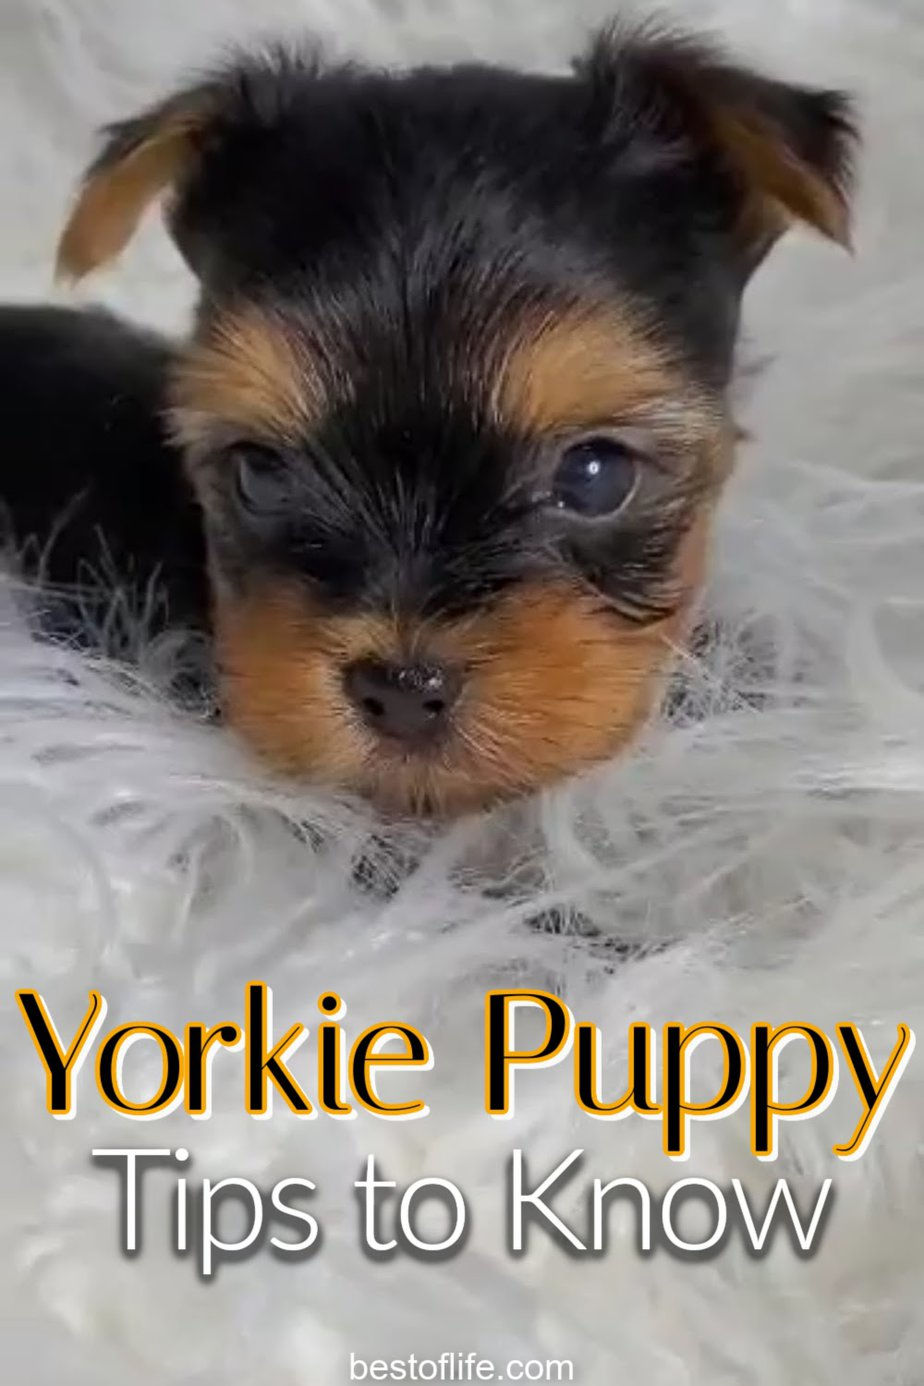 There are a few yorkie puppy tips to know that could make a big difference as you welcome your yorkie home and learn how to train them. Puppy Tips Bringing Home | Life Hacks for Puppy Owners | Tips and Tricks for Puppies | Tips for New Dog Owners | Tips for Yorkie Owners | Things to Know About Yorkies | Dog Training Ideas | Yorkie Training Ideas #yorkie #pets via @thebestoflife